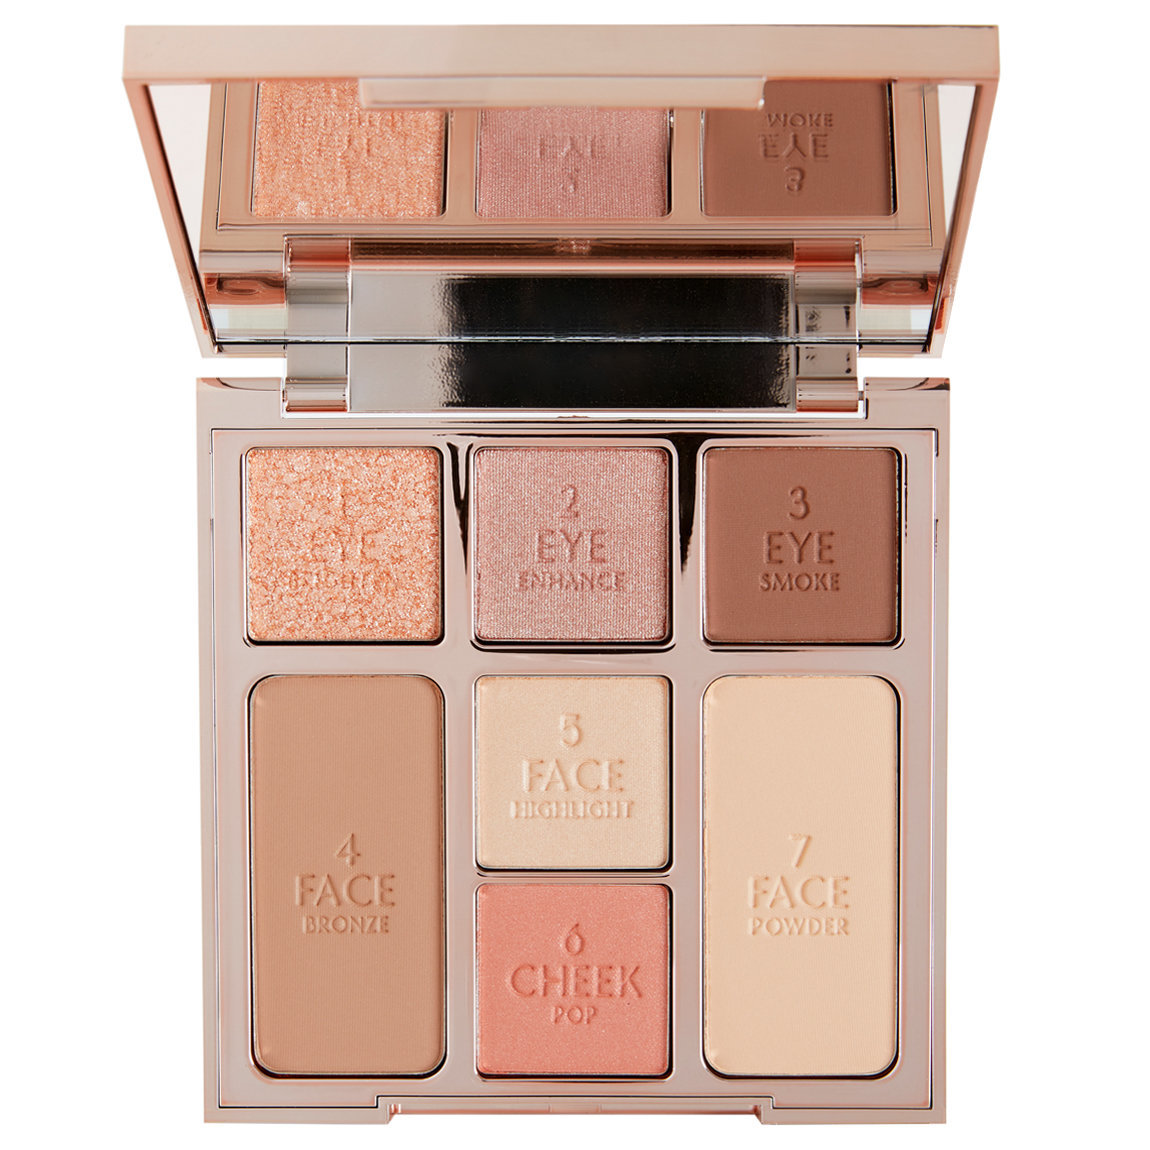 Charlotte Tilbury Instant Look of Love In A Palette Pretty Blushed Beauty alternative view 1 - product swatch.